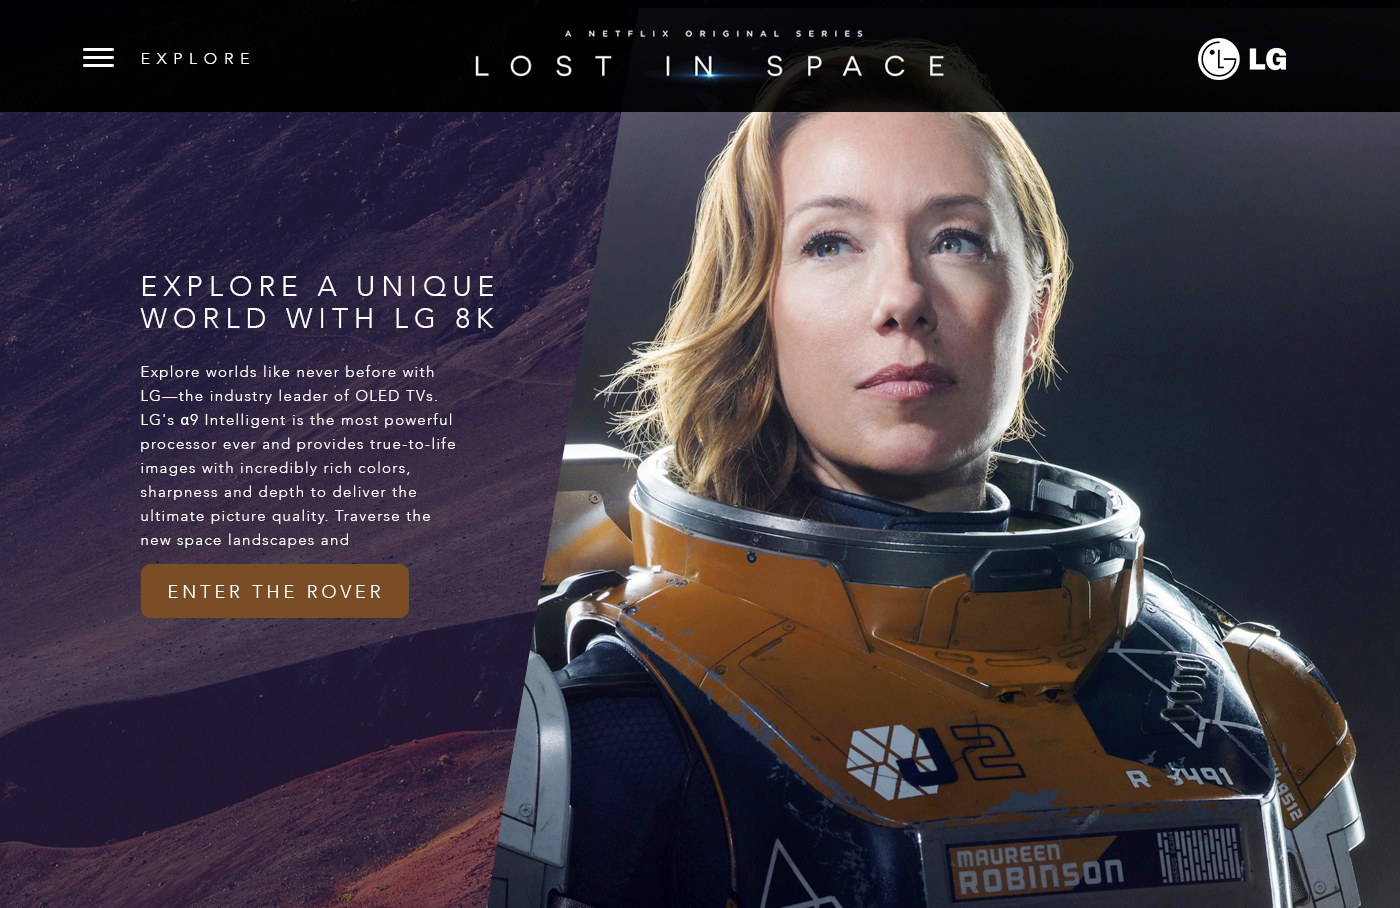 Lost_In_Space_microsite